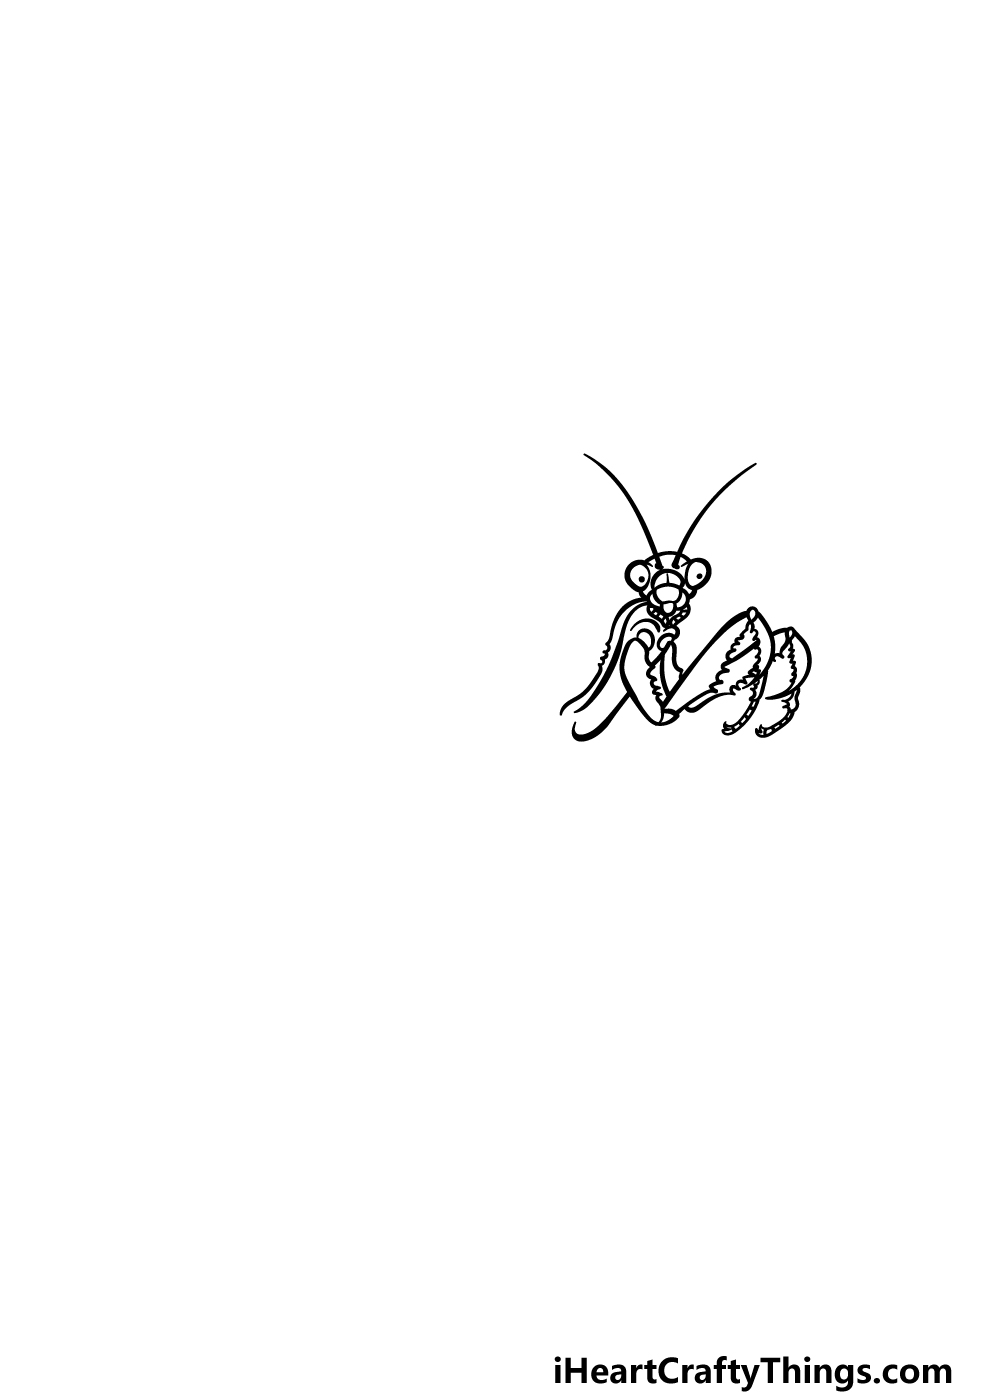 drawing an insect step 2